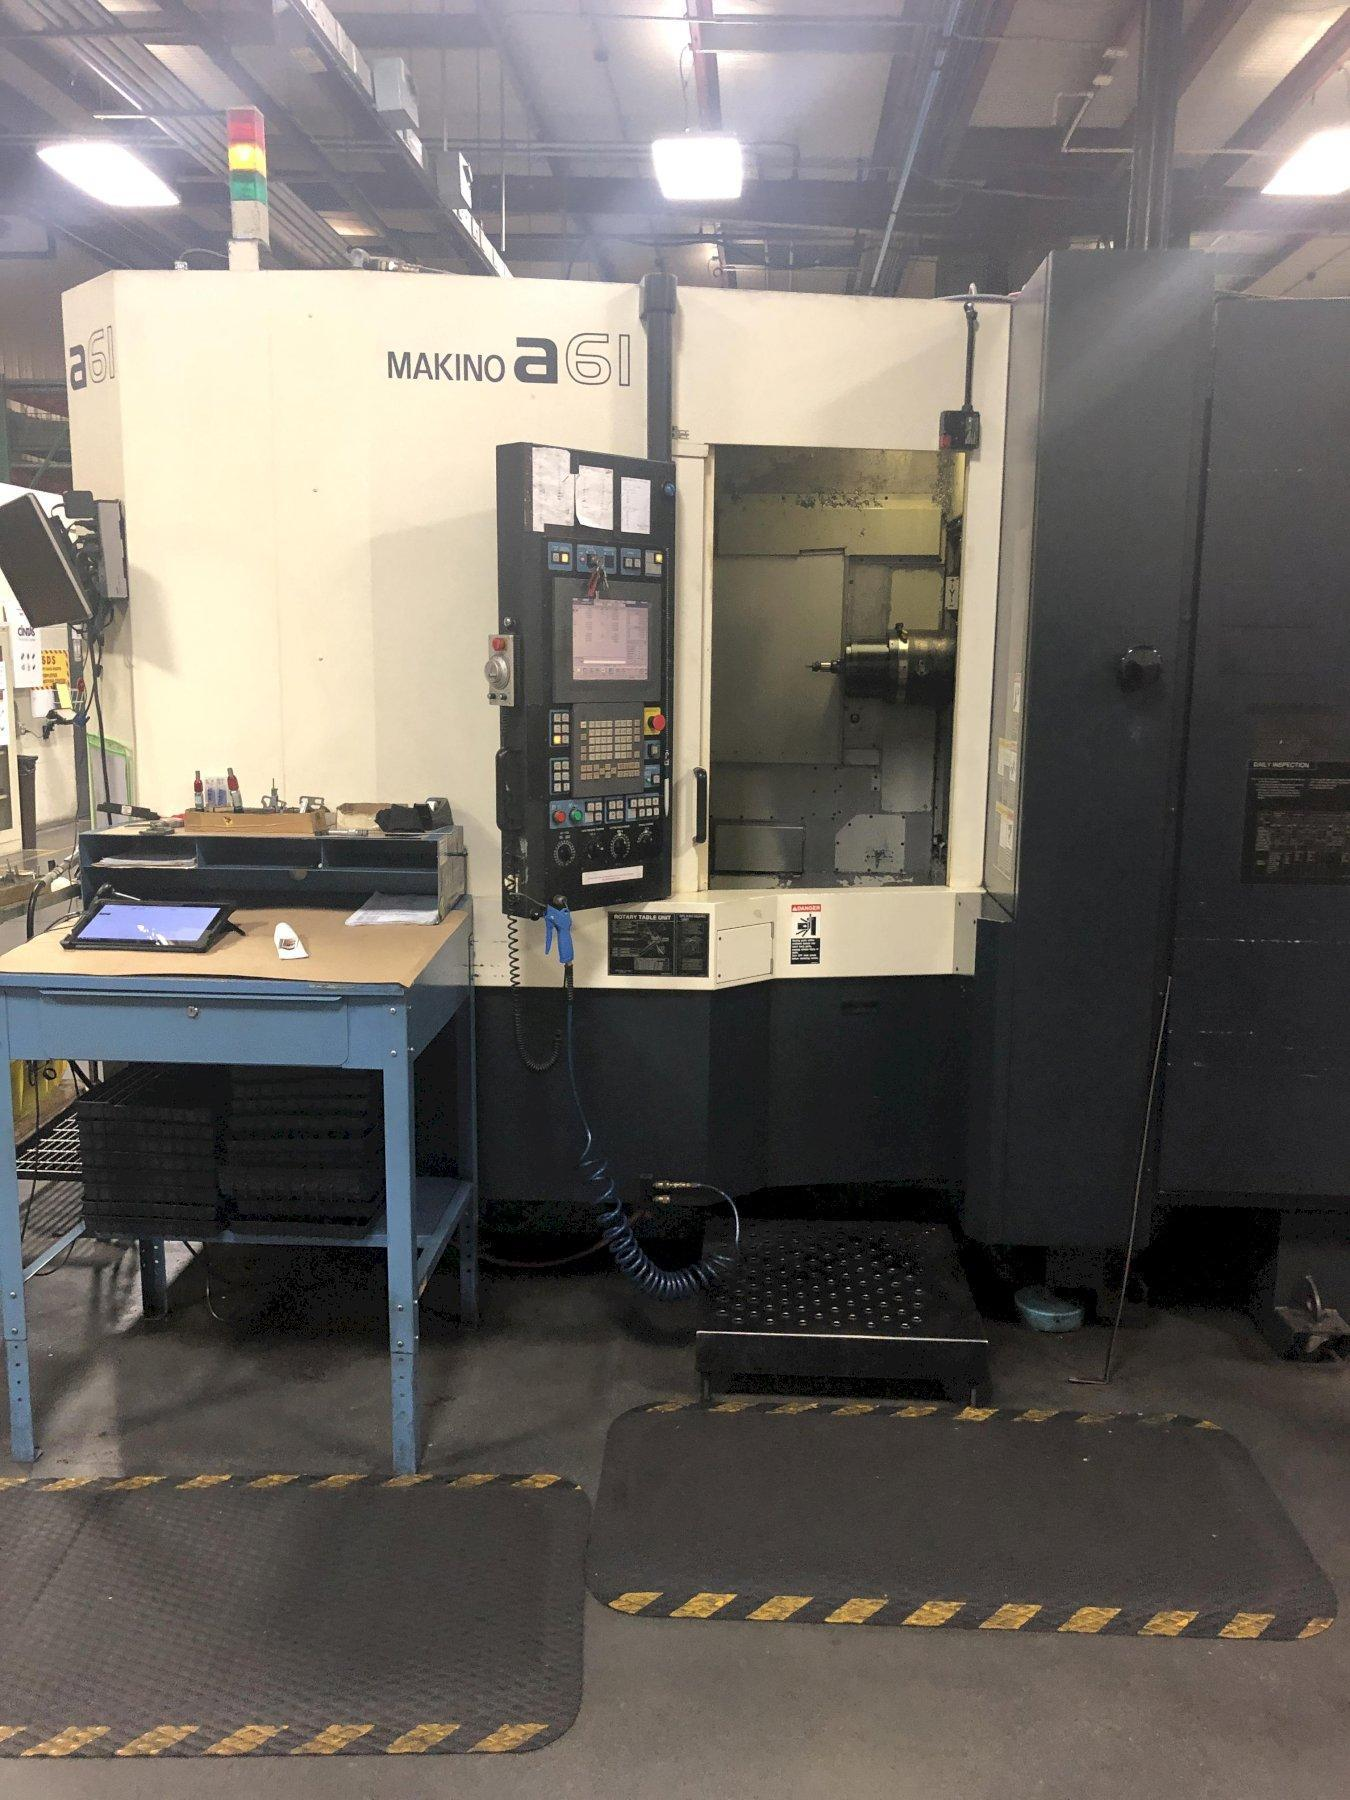 "Makino A61 CNC Horizontal Machining Center, Fanuc Pro 5, 12K Spindle, 19.7"" Pallets, 29""/26""/29"" Travels, CT40, Coolant Thru Spindle, 30 HP, Data Ctr, 4th Axis Positioning, Chiller, 2007"